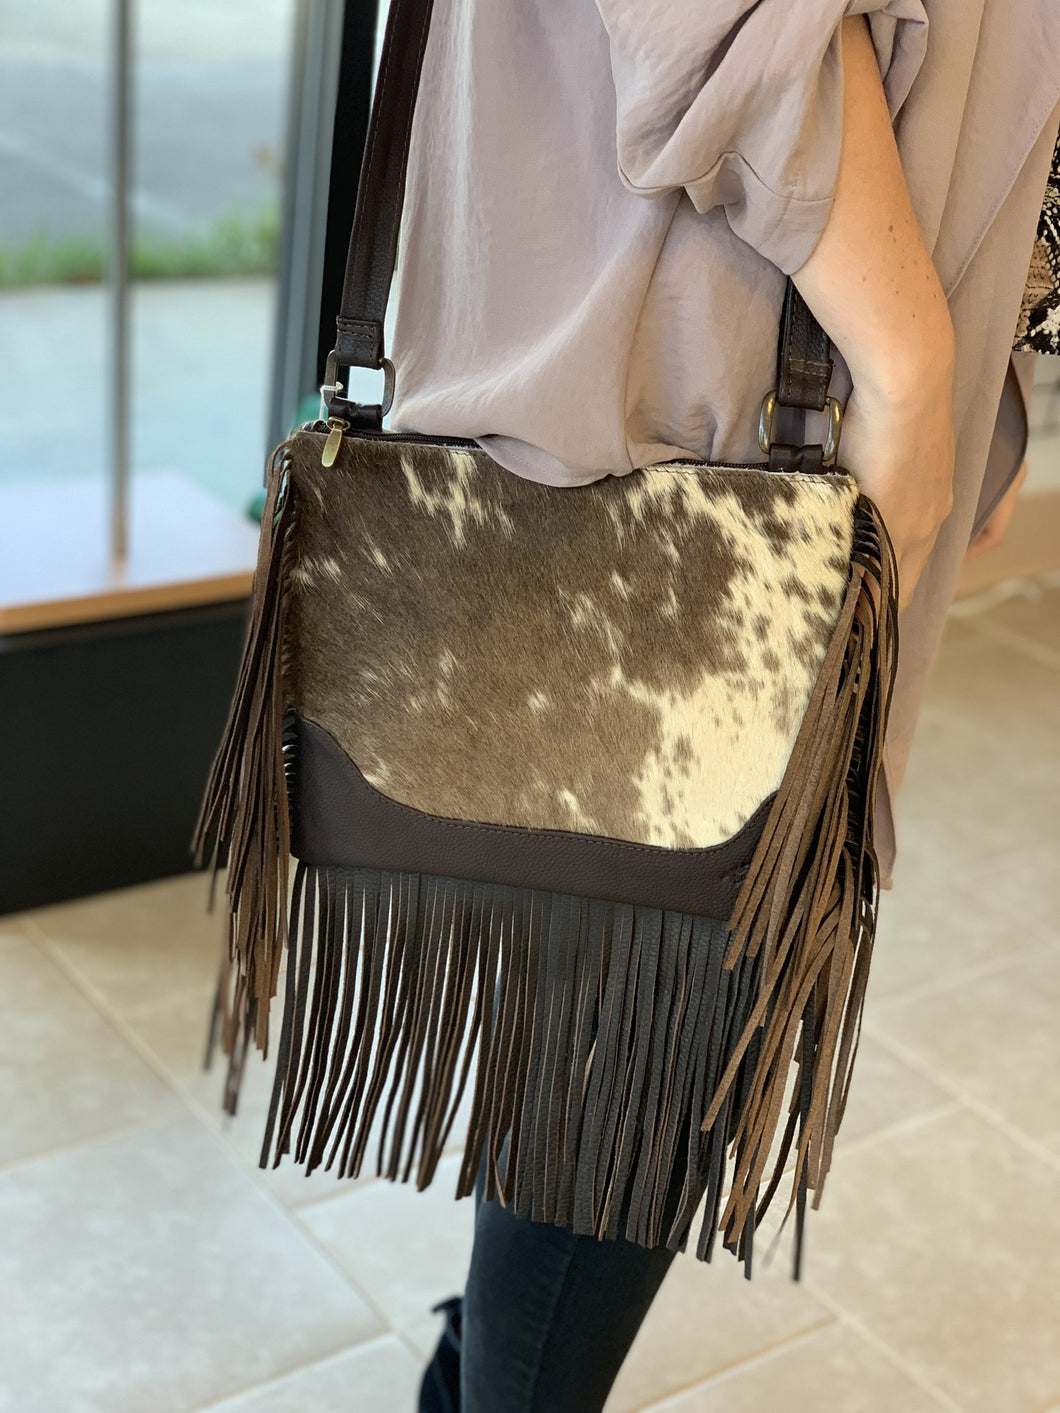 Strap Crossbody W/ Fringe - Breazy's Boutique